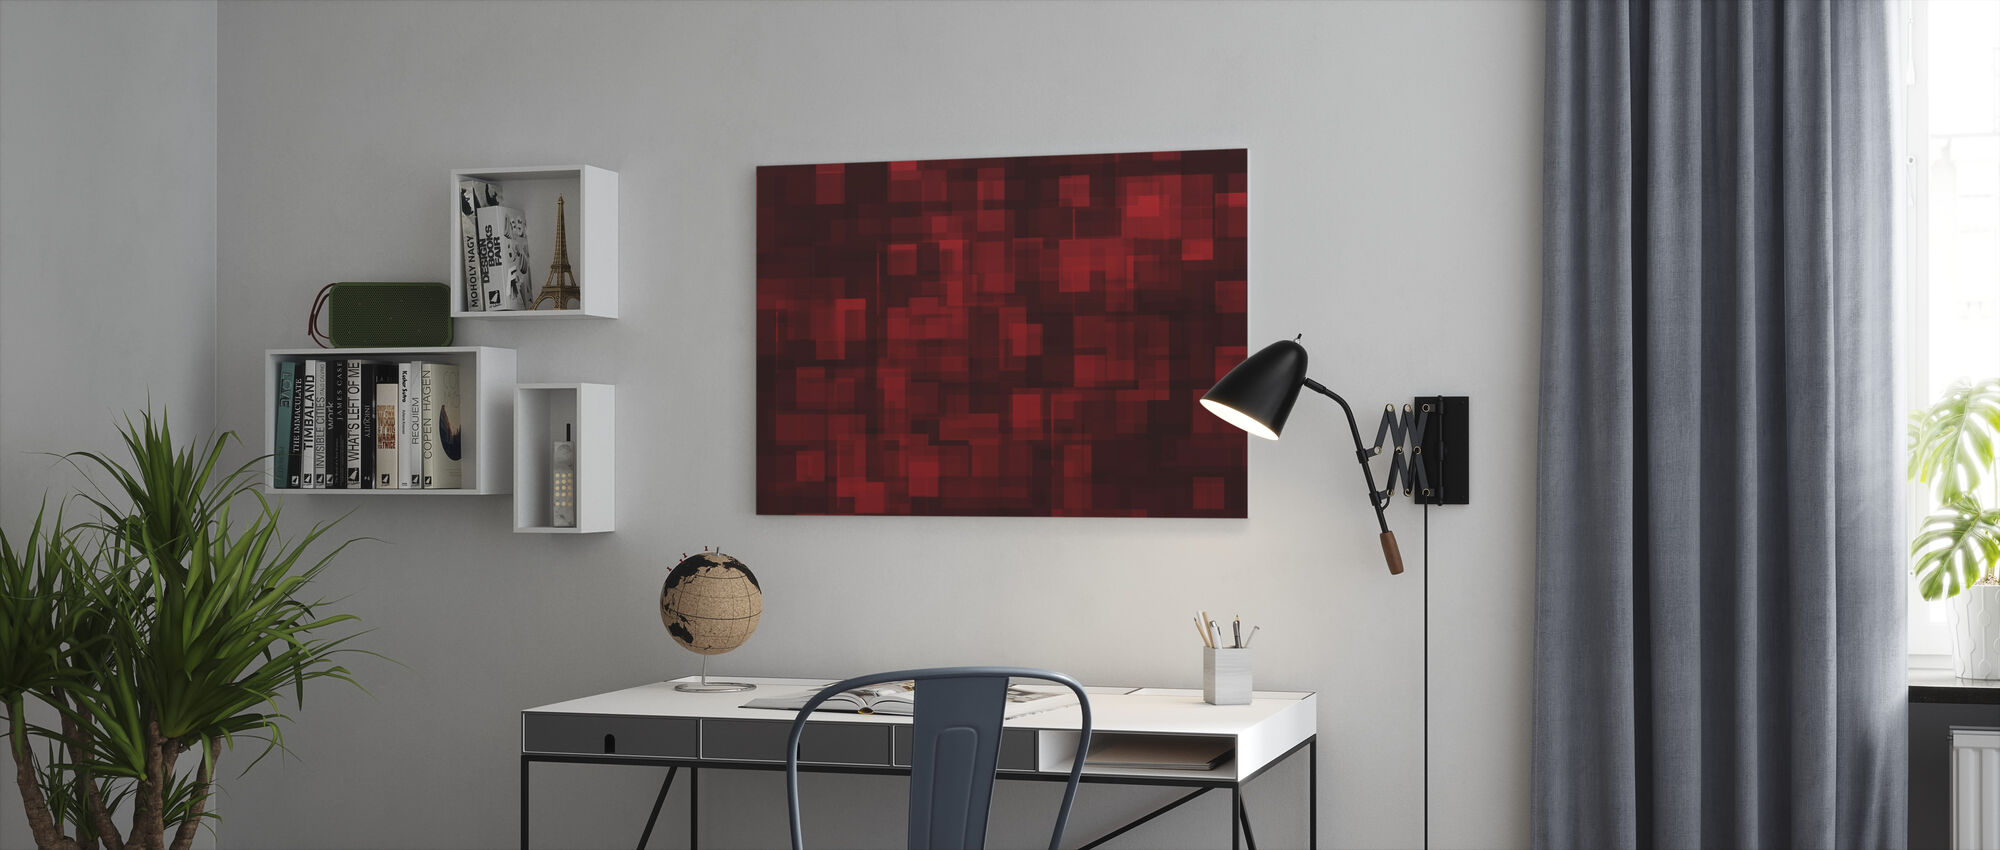 Chaotic Red - Canvas print - Office